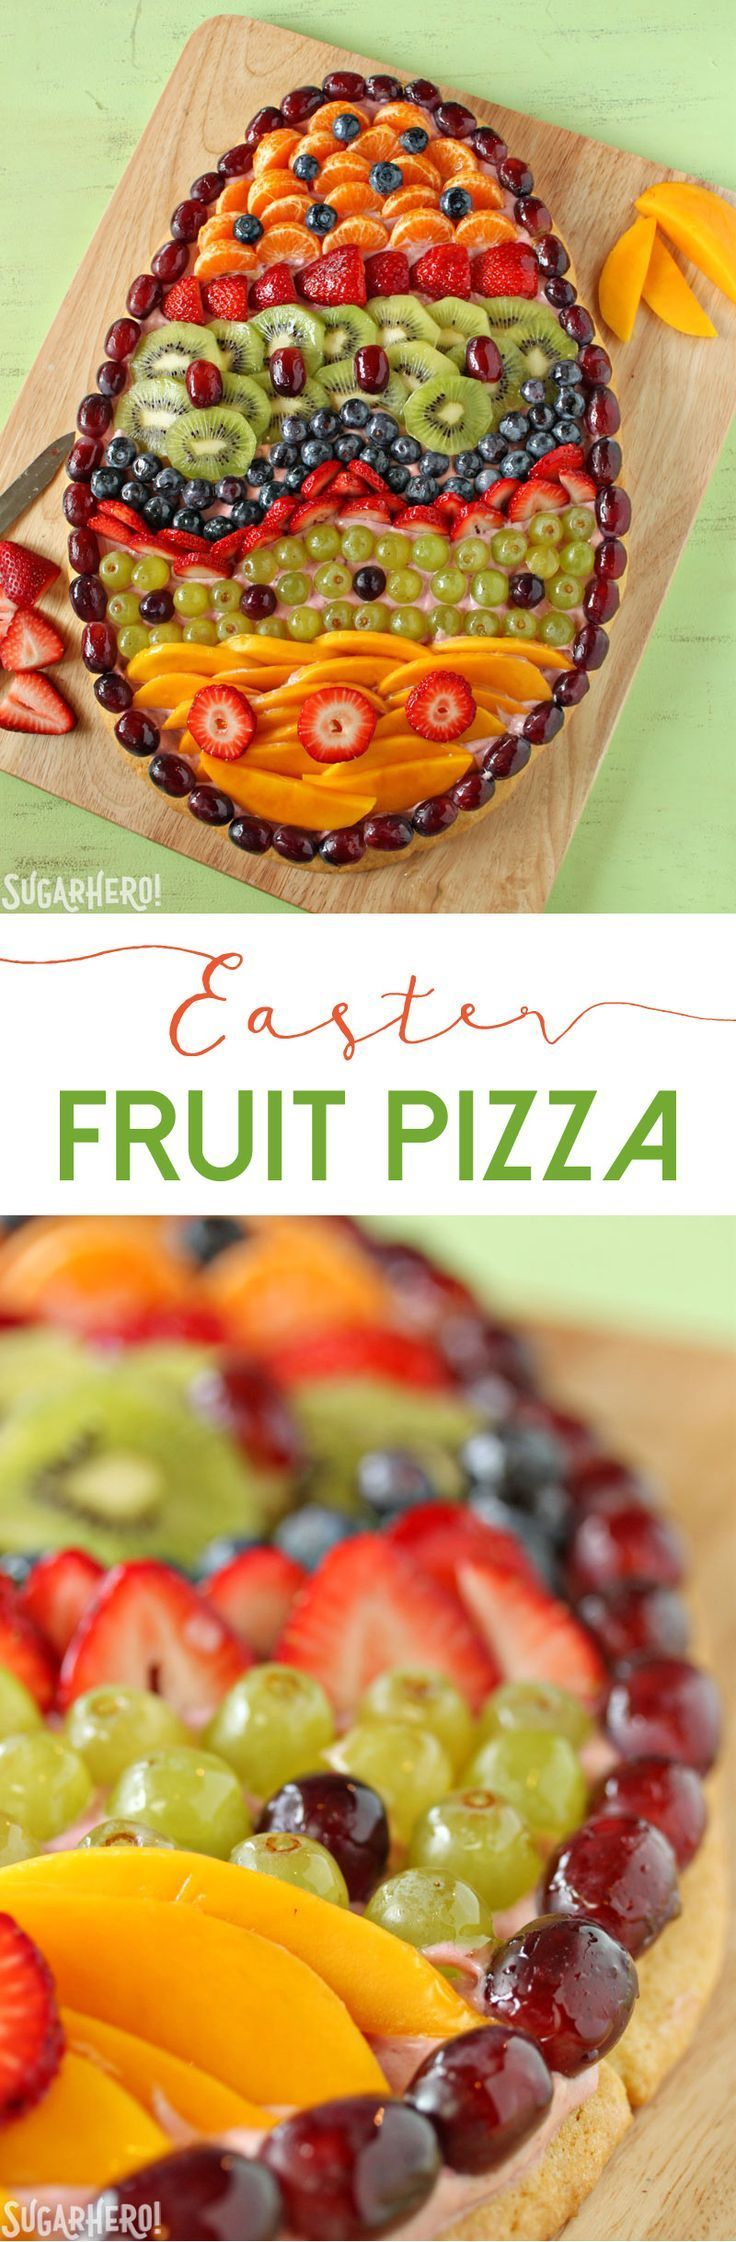 Fruit Pizza in the shape of an Easter egg. This is the best spring breakfast and brunch recipe!   From SugarHero.com